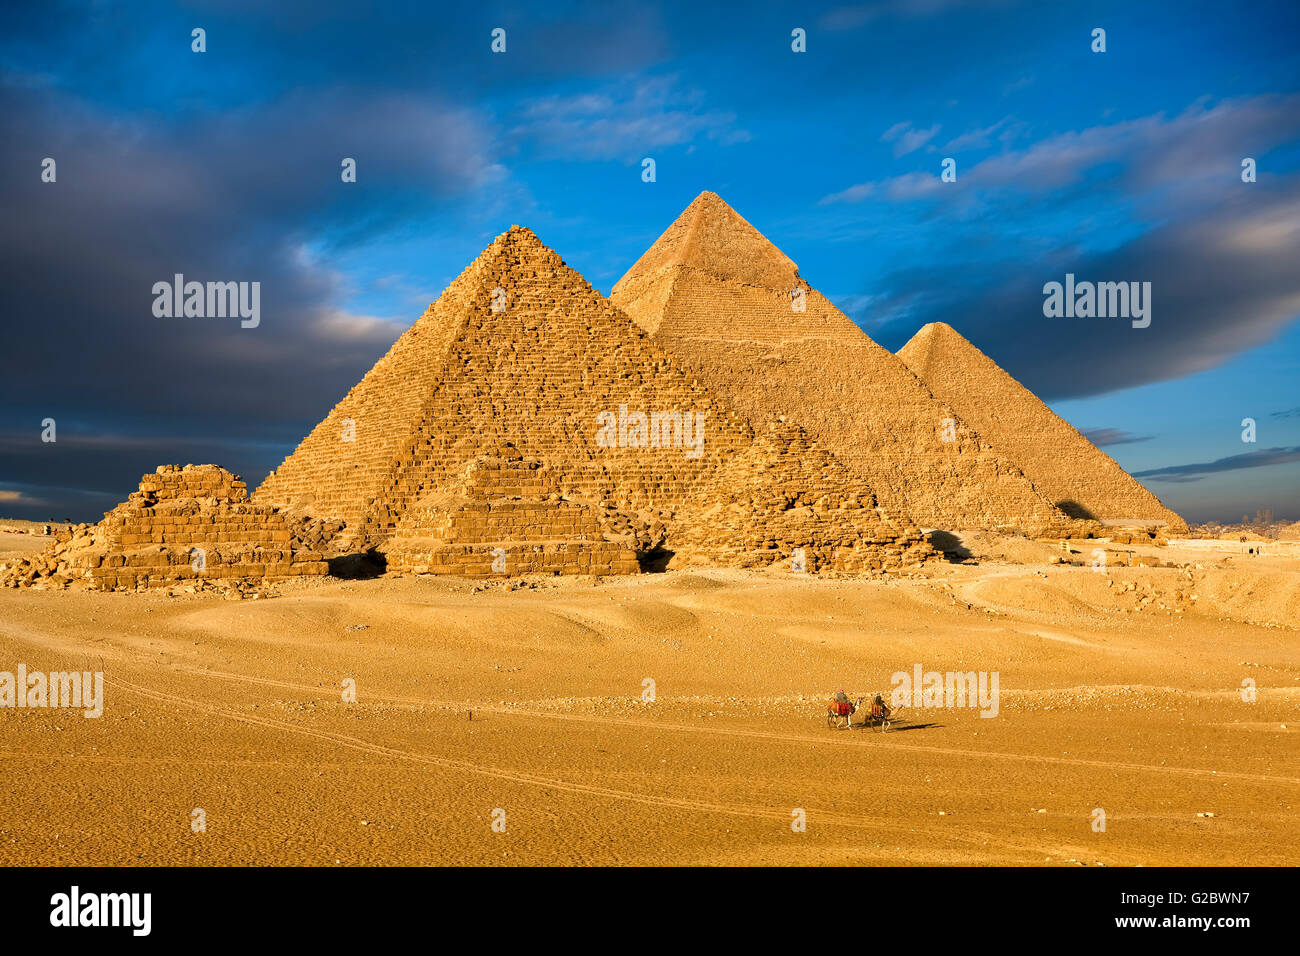 The pyramids of Giza near Cairo - Stock Image